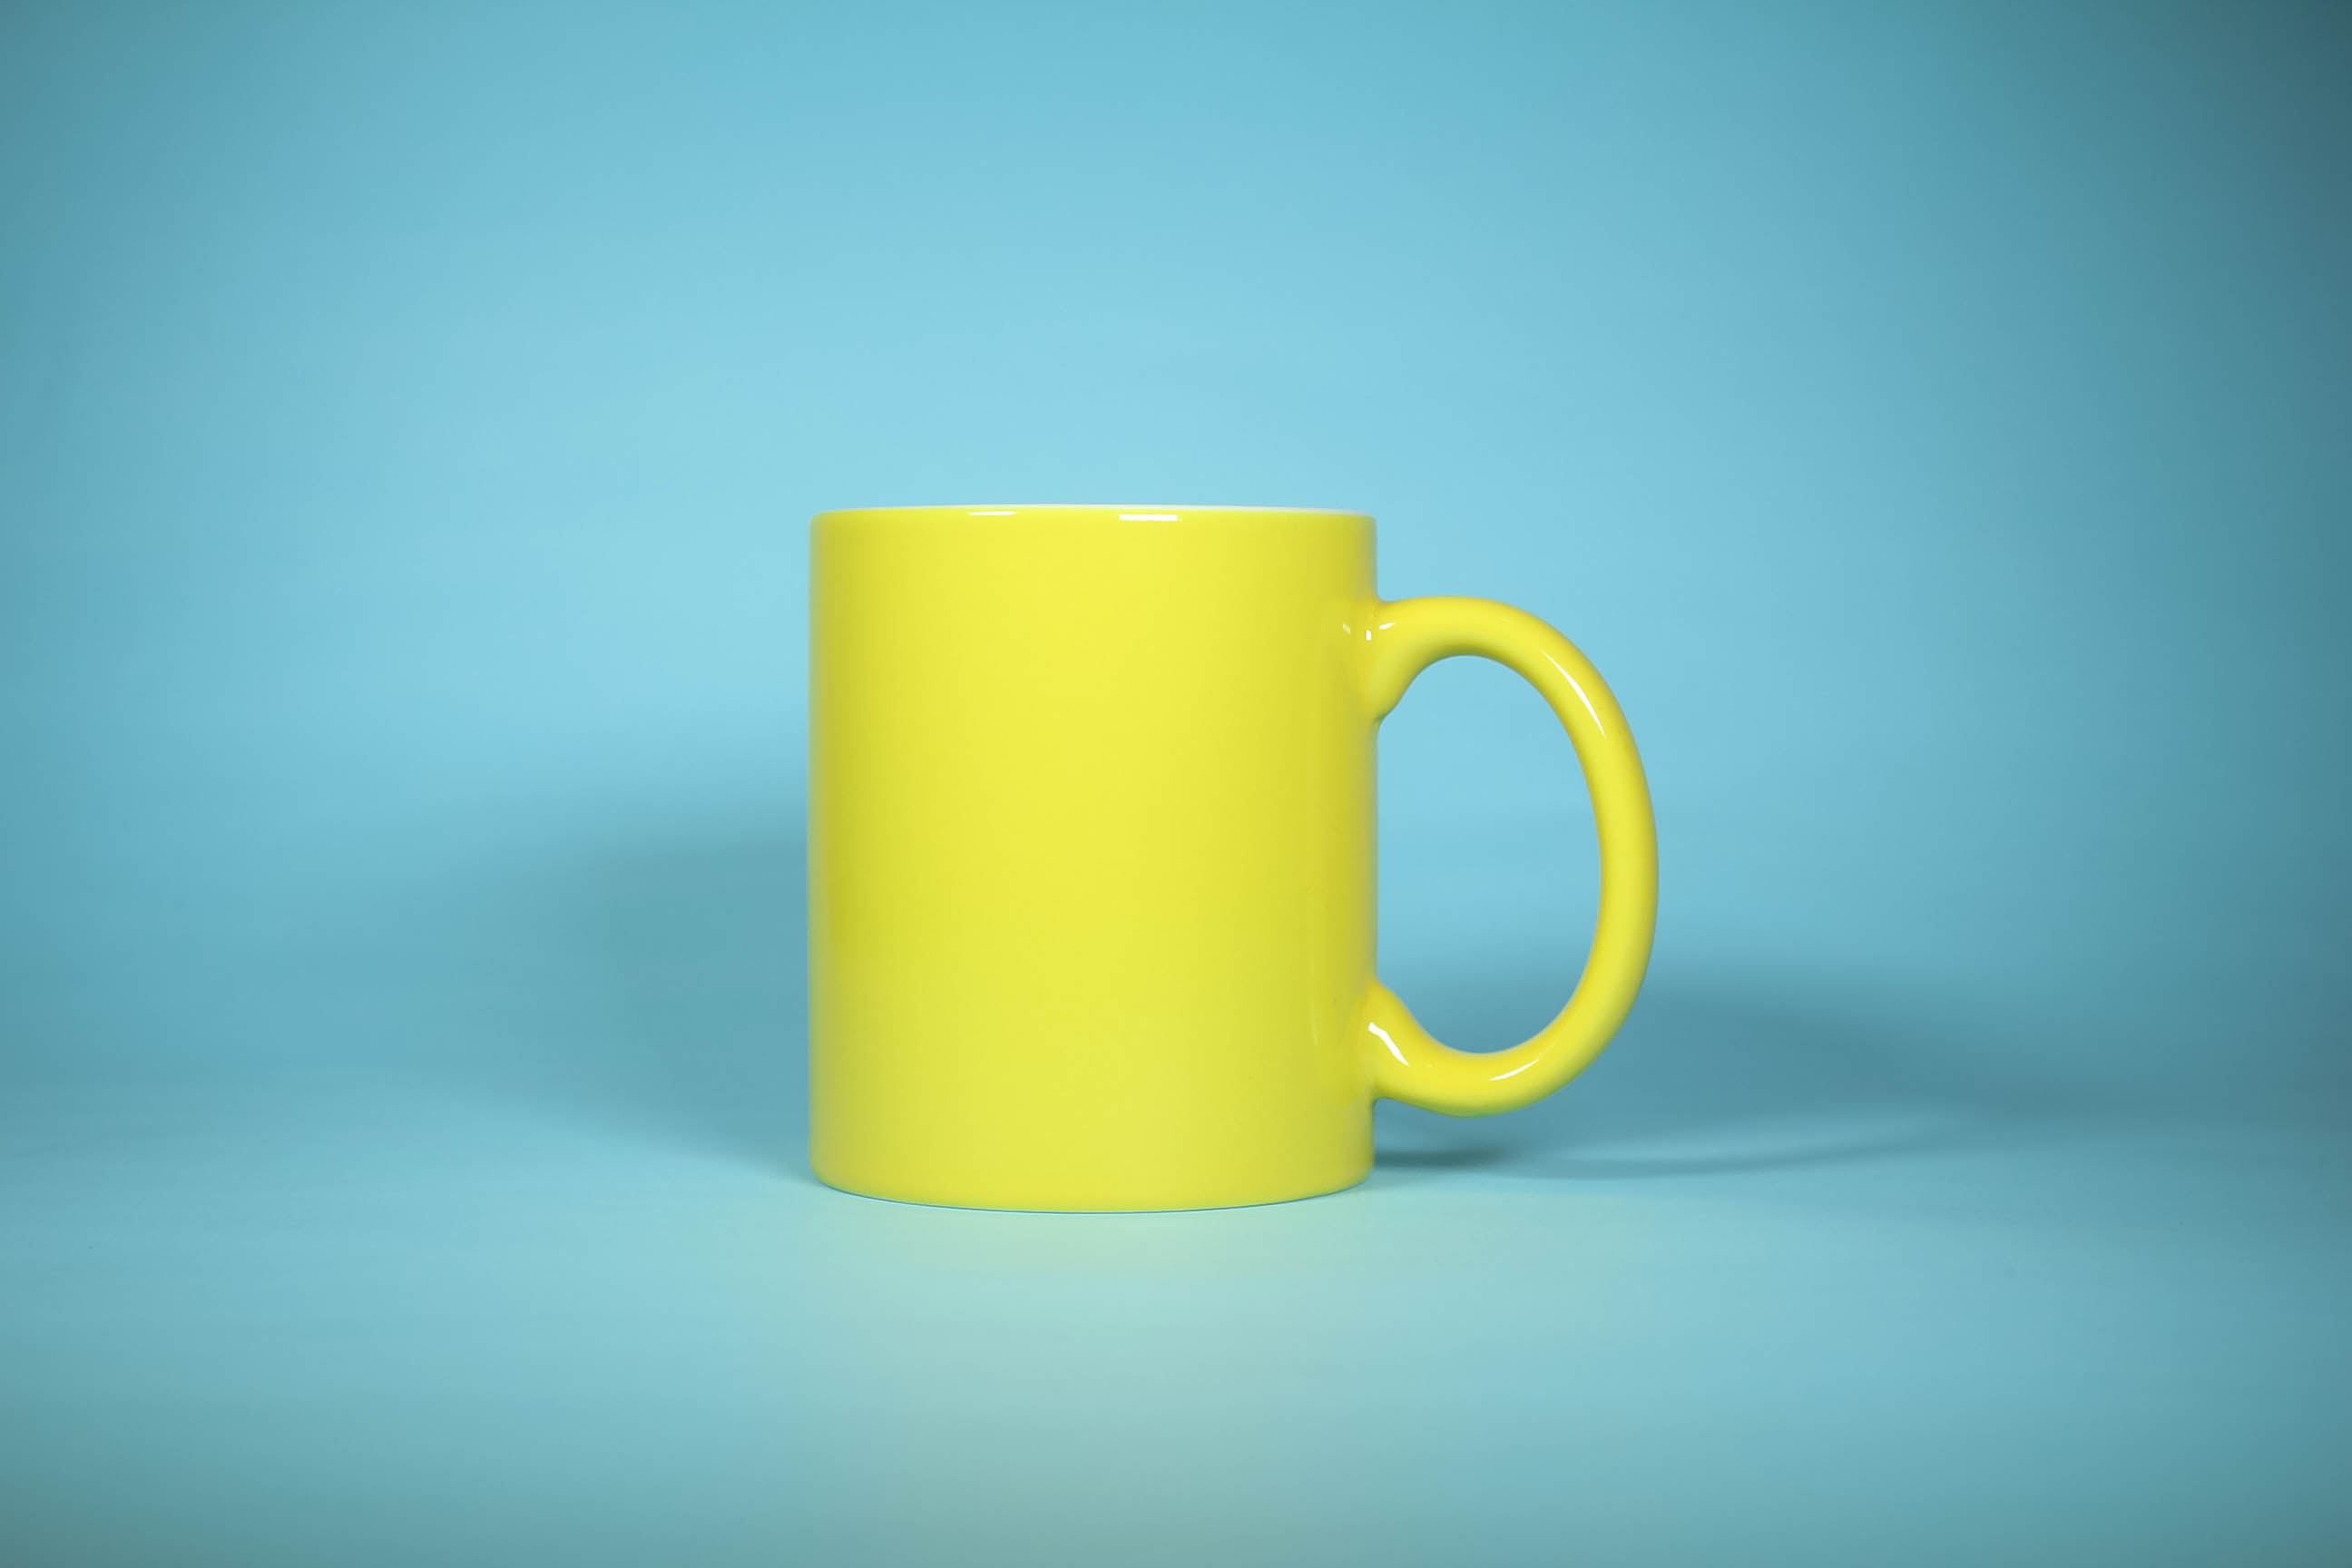 This is a mug we shot in the studio. The photographers used a blue construction paper as a backdrop.